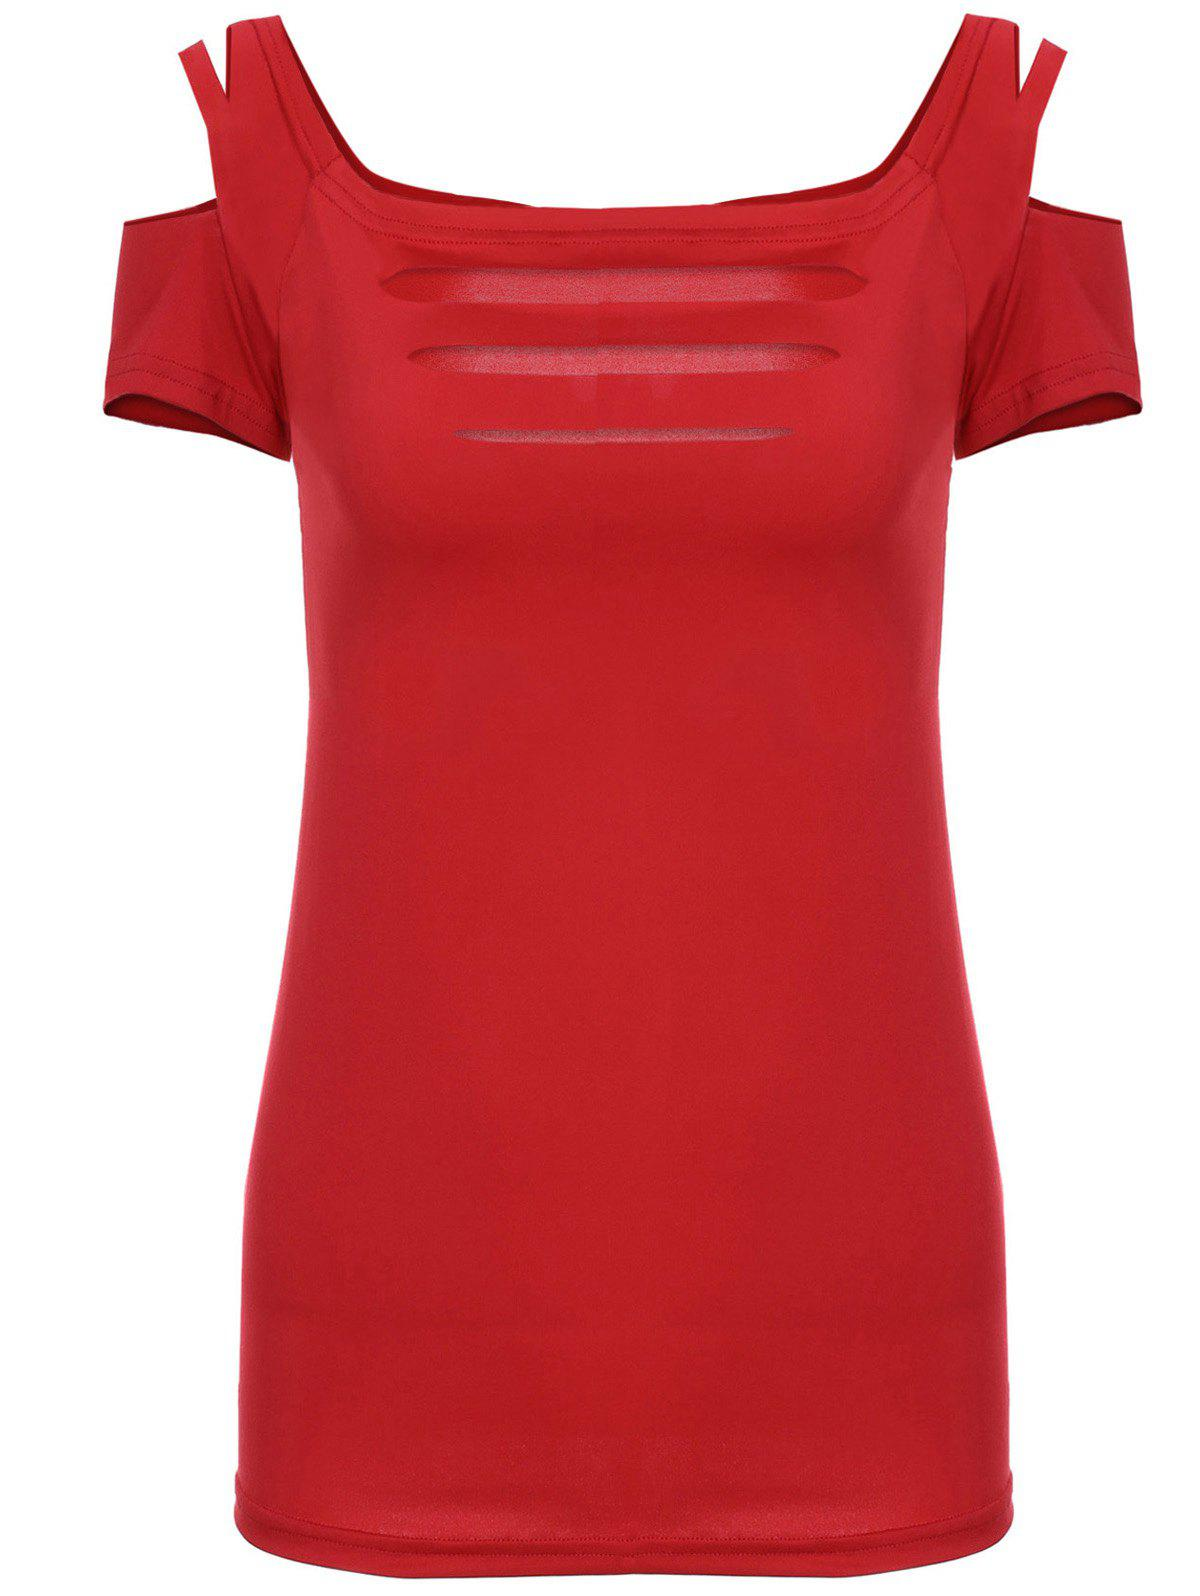 Alluring Solid Color Elastic Short Sleeve Scoop Neck Battered T-Shirt - RED S